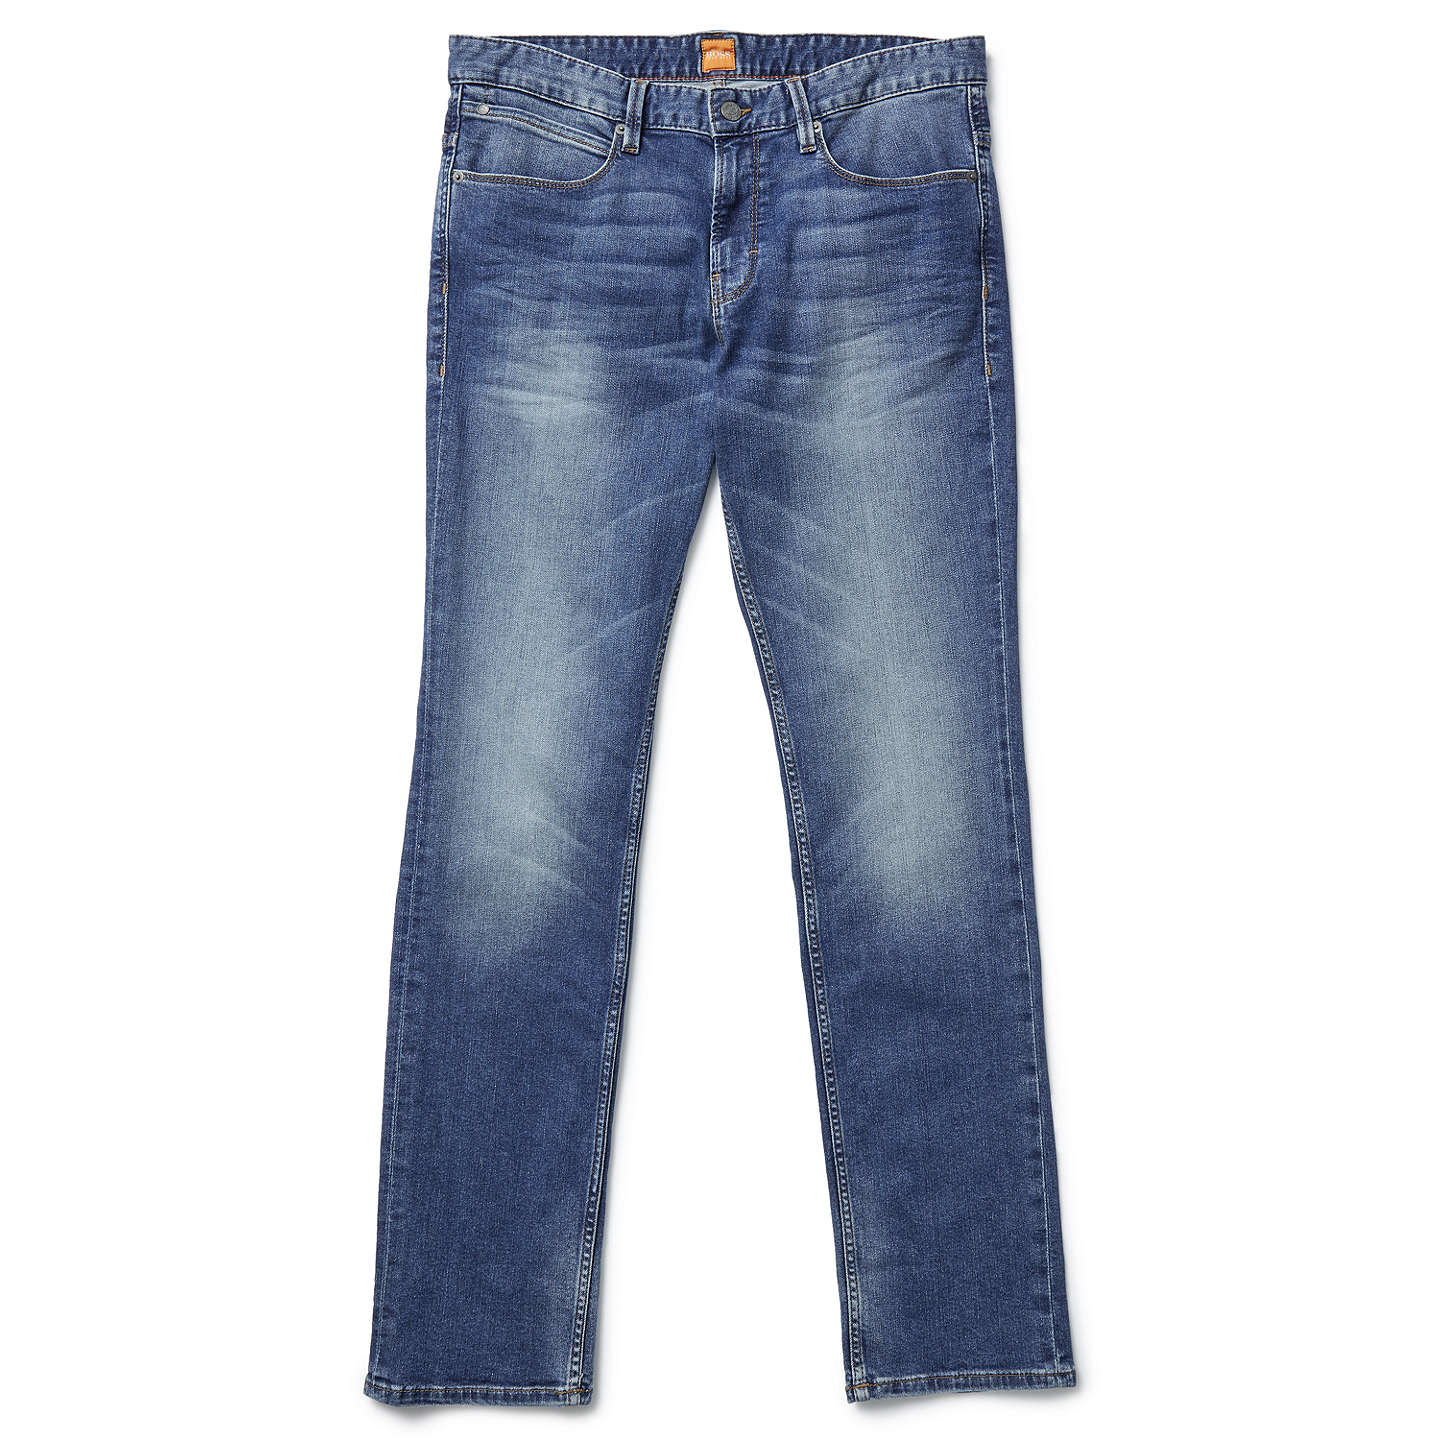 BuyBOSS Orange Orange63 Slim Jeans, Bright Blue, 32S Online at johnlewis.com